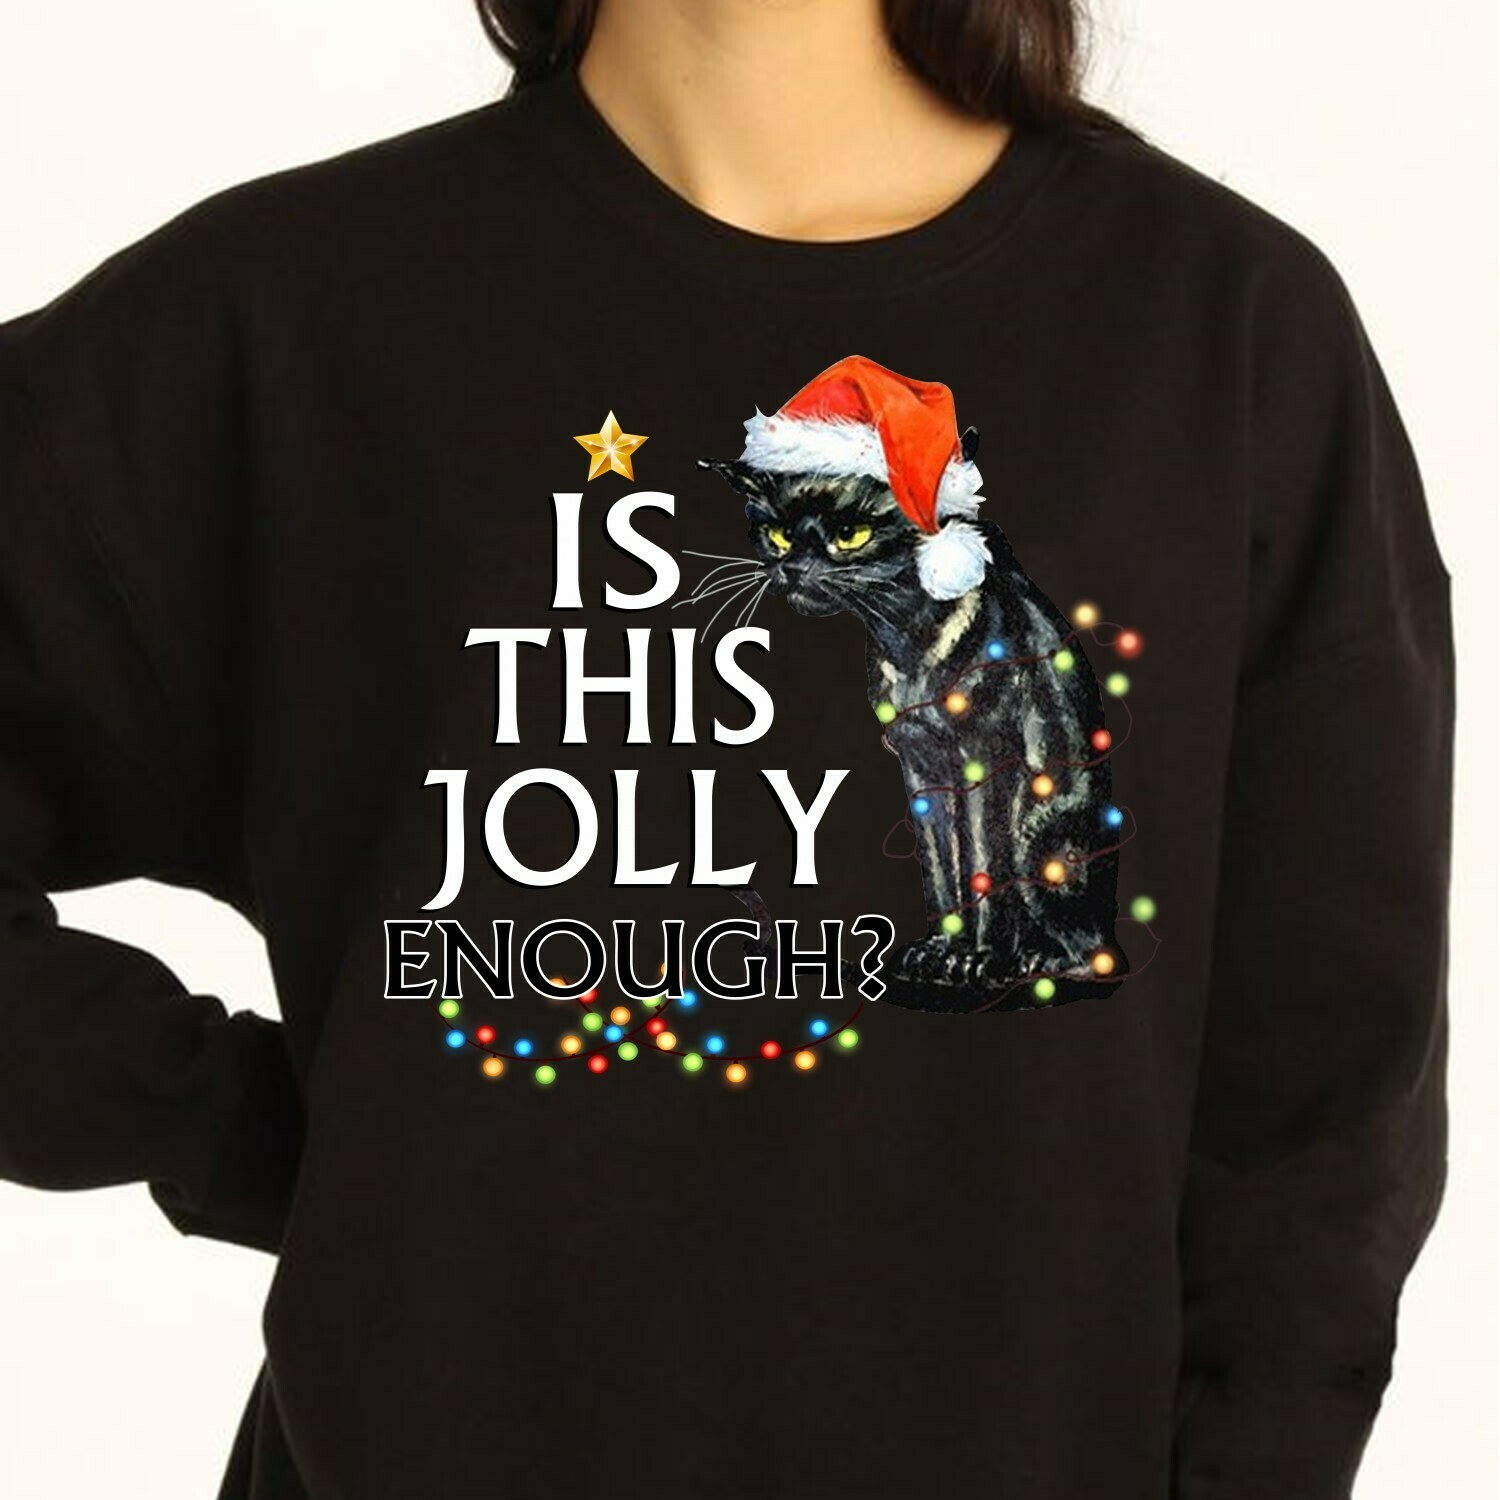 Black Cat Is This Jolly Enough Noel Merry Christmas 2019 Gift For Lovers Cat Merry Christmas Noel Family Vacation Friends Team Party T-Shirt Long Sleeve Sweatshirt Hoodie Jolly Family Gifts